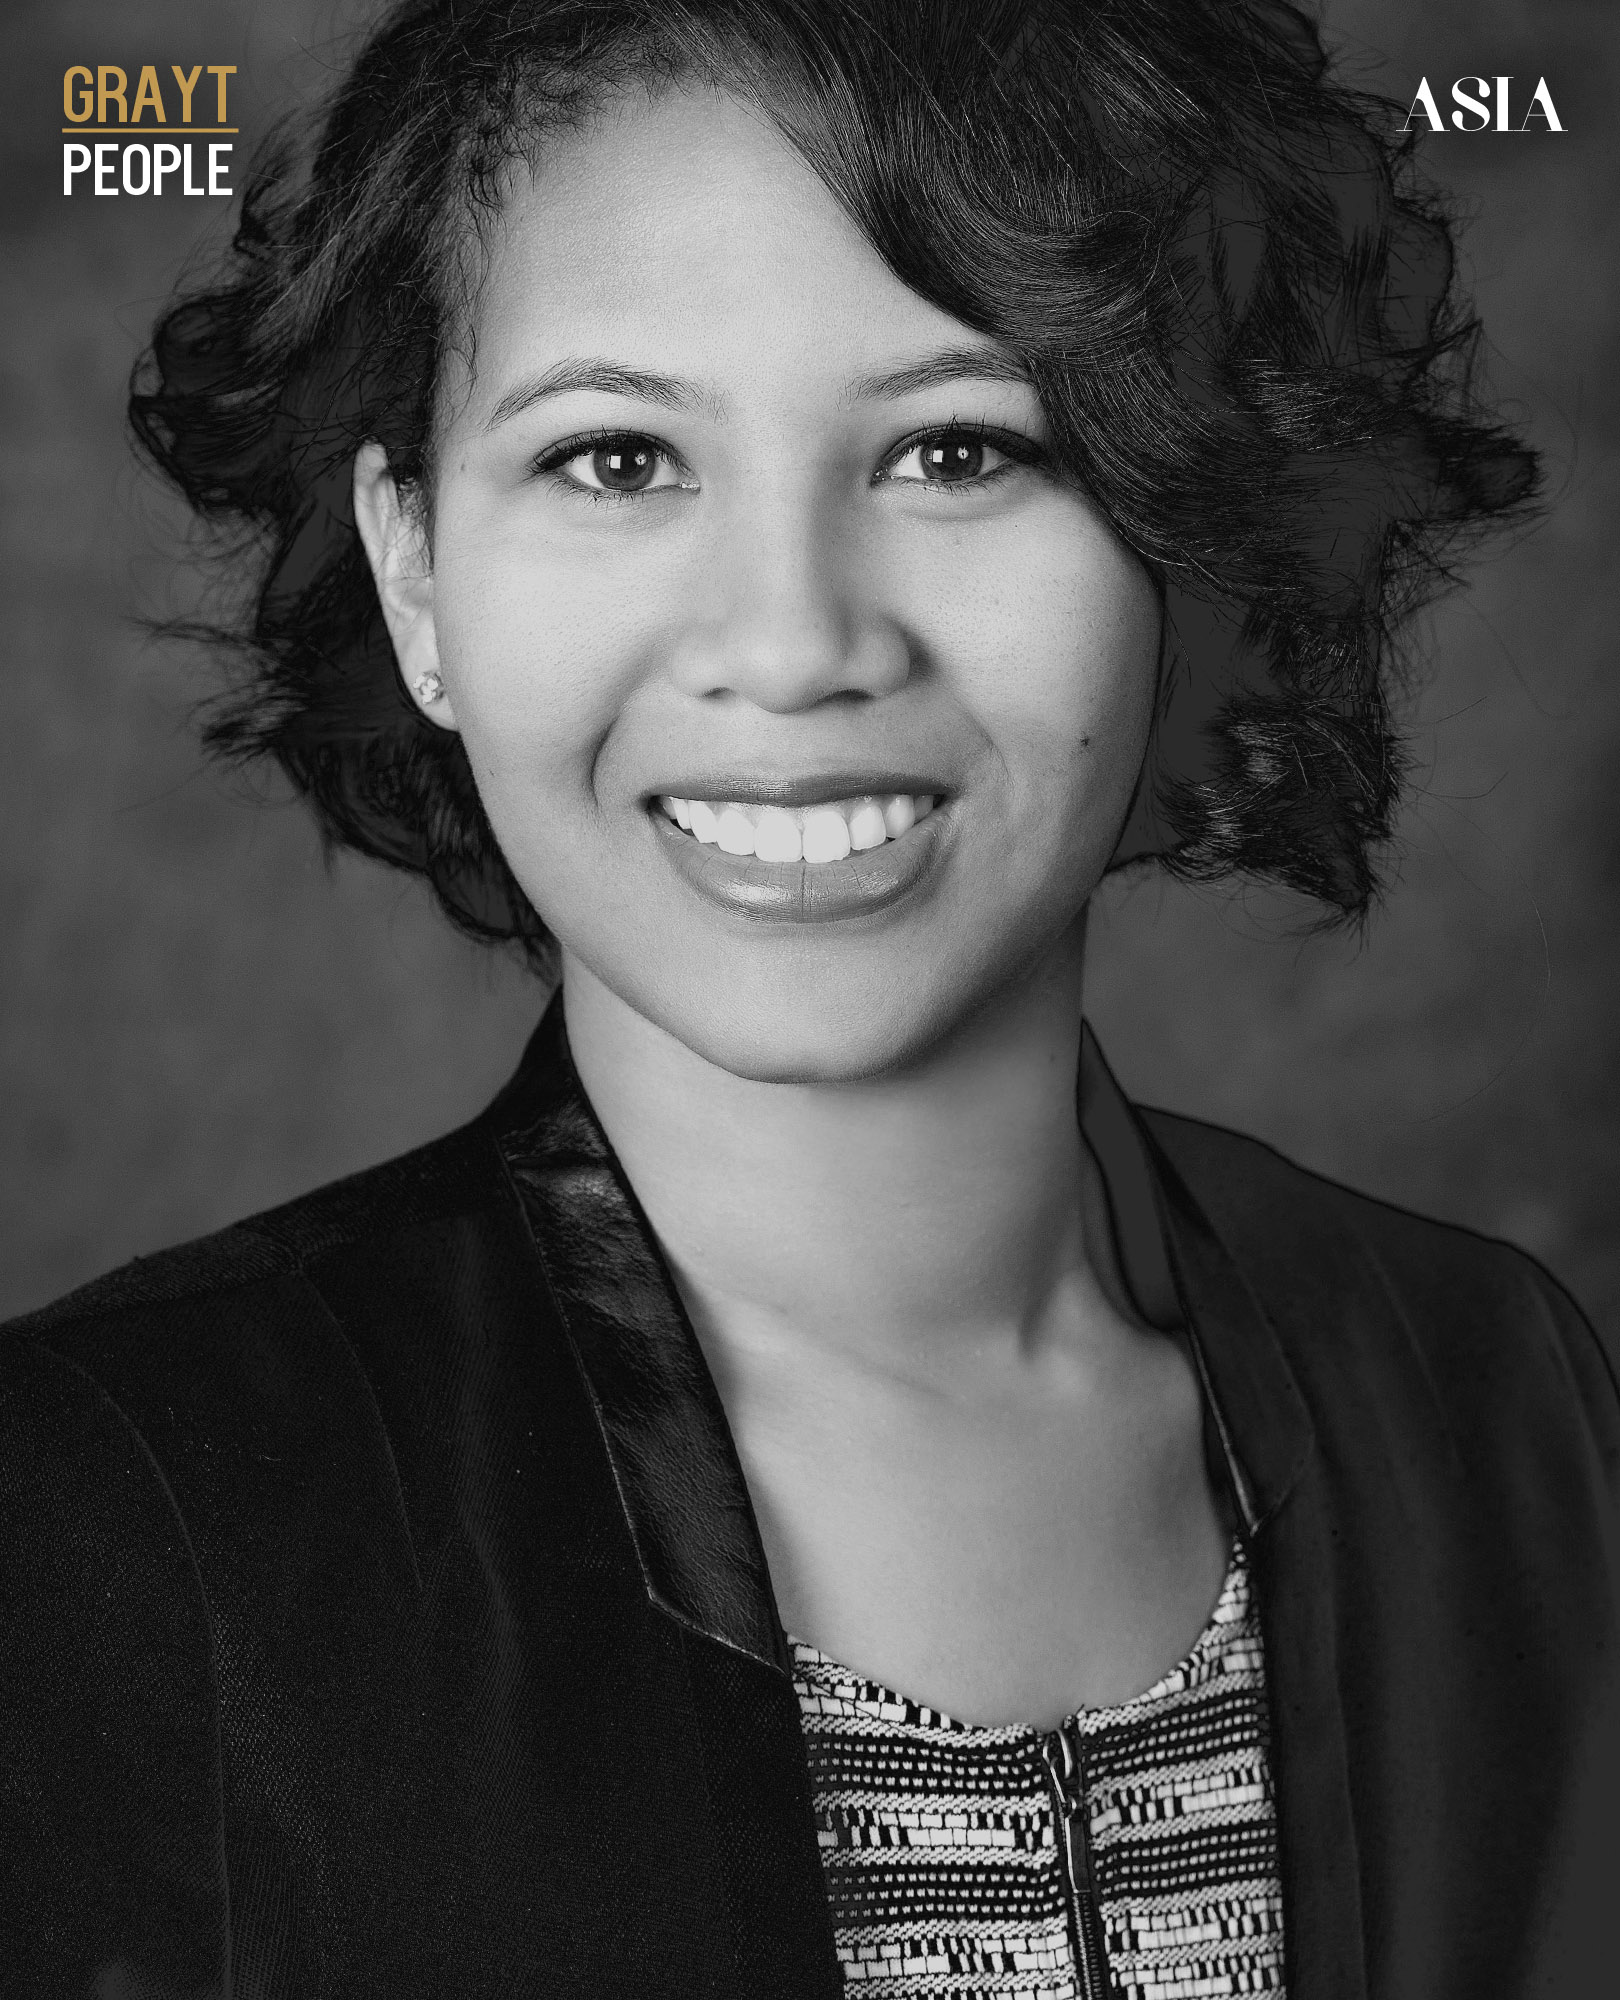 GRAYT PEOPLE: Asia Dean | Healthcare Professional & Friend